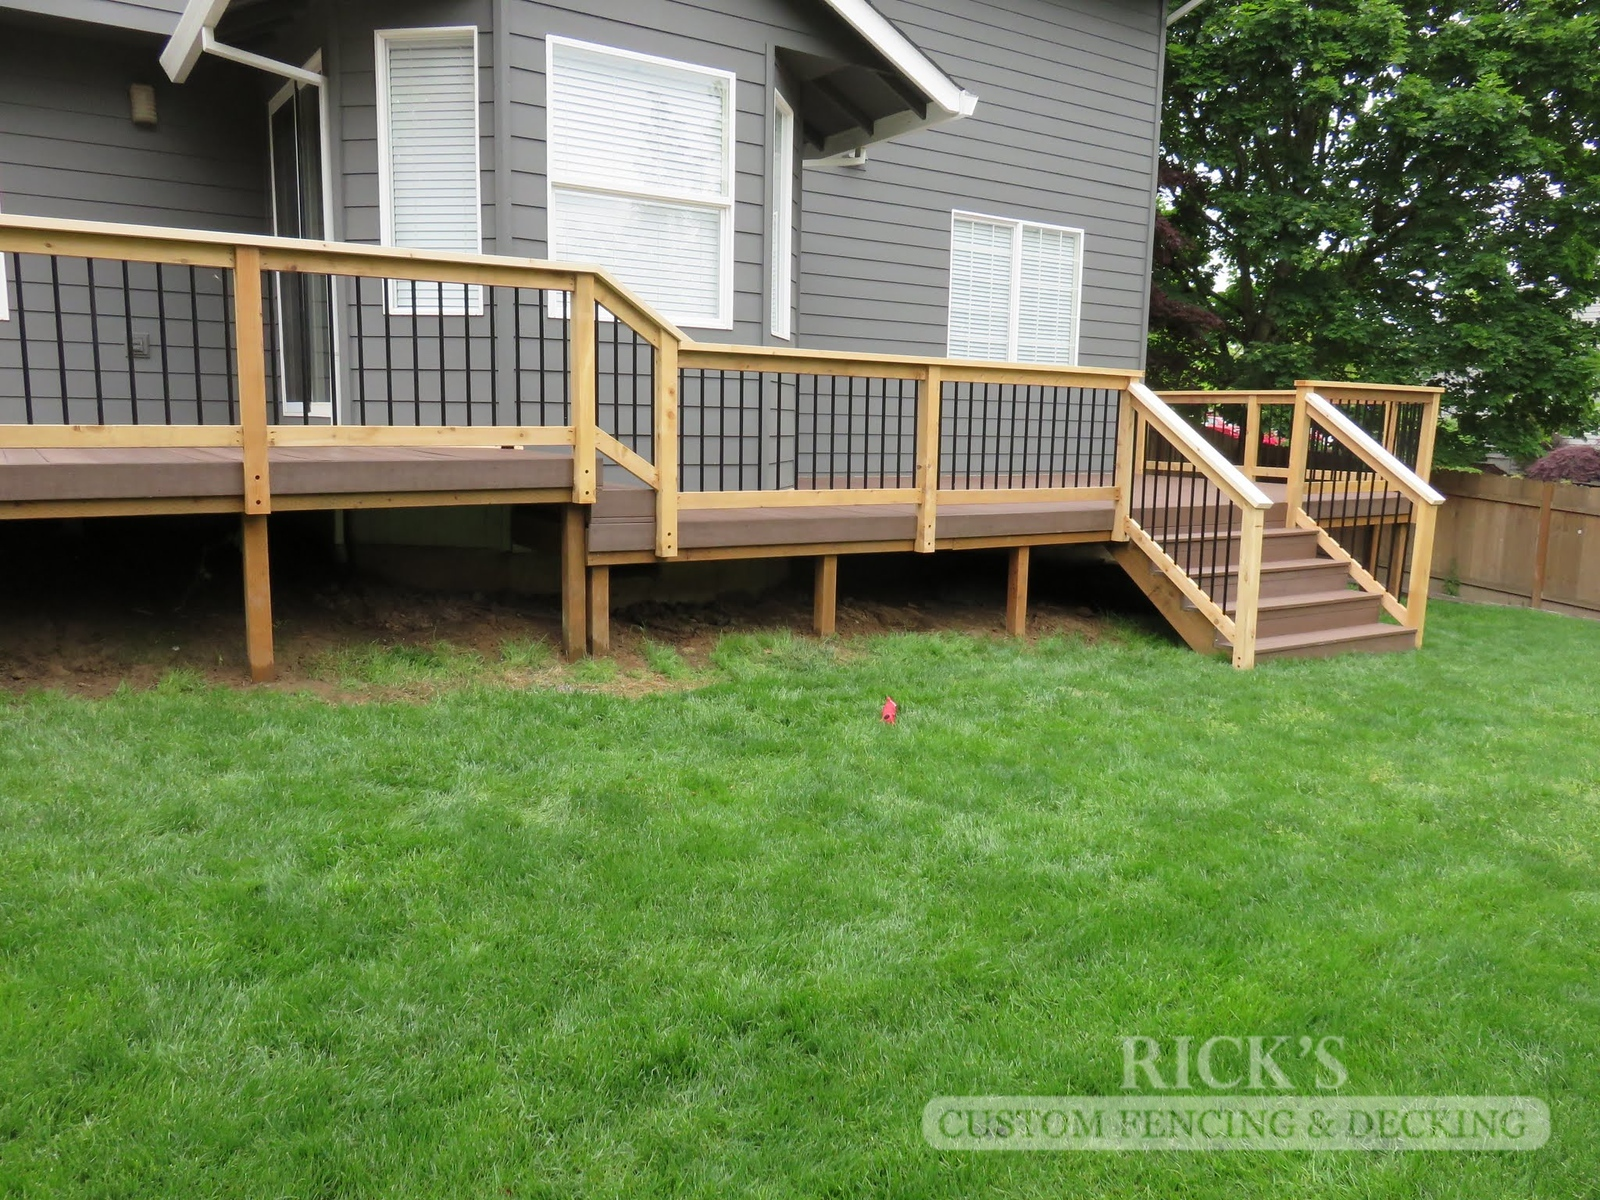 1616 - Cedar Handrail with Aluminum Balusters